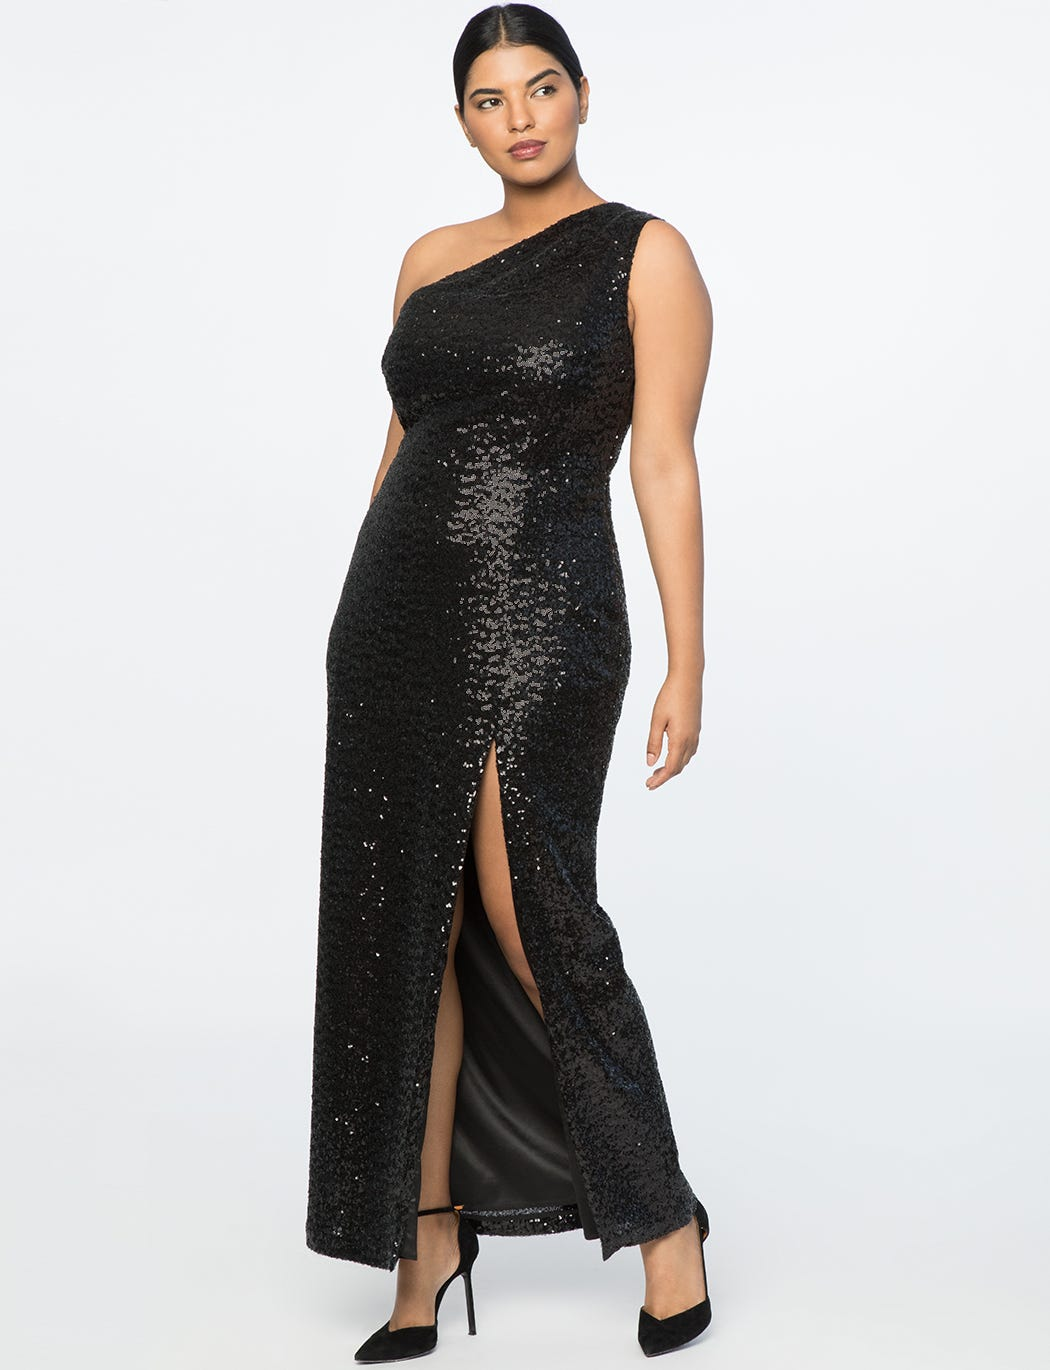 626991dcdc5d Jason Wu x Eloquii Plus-Size Holiday Collection Is Here